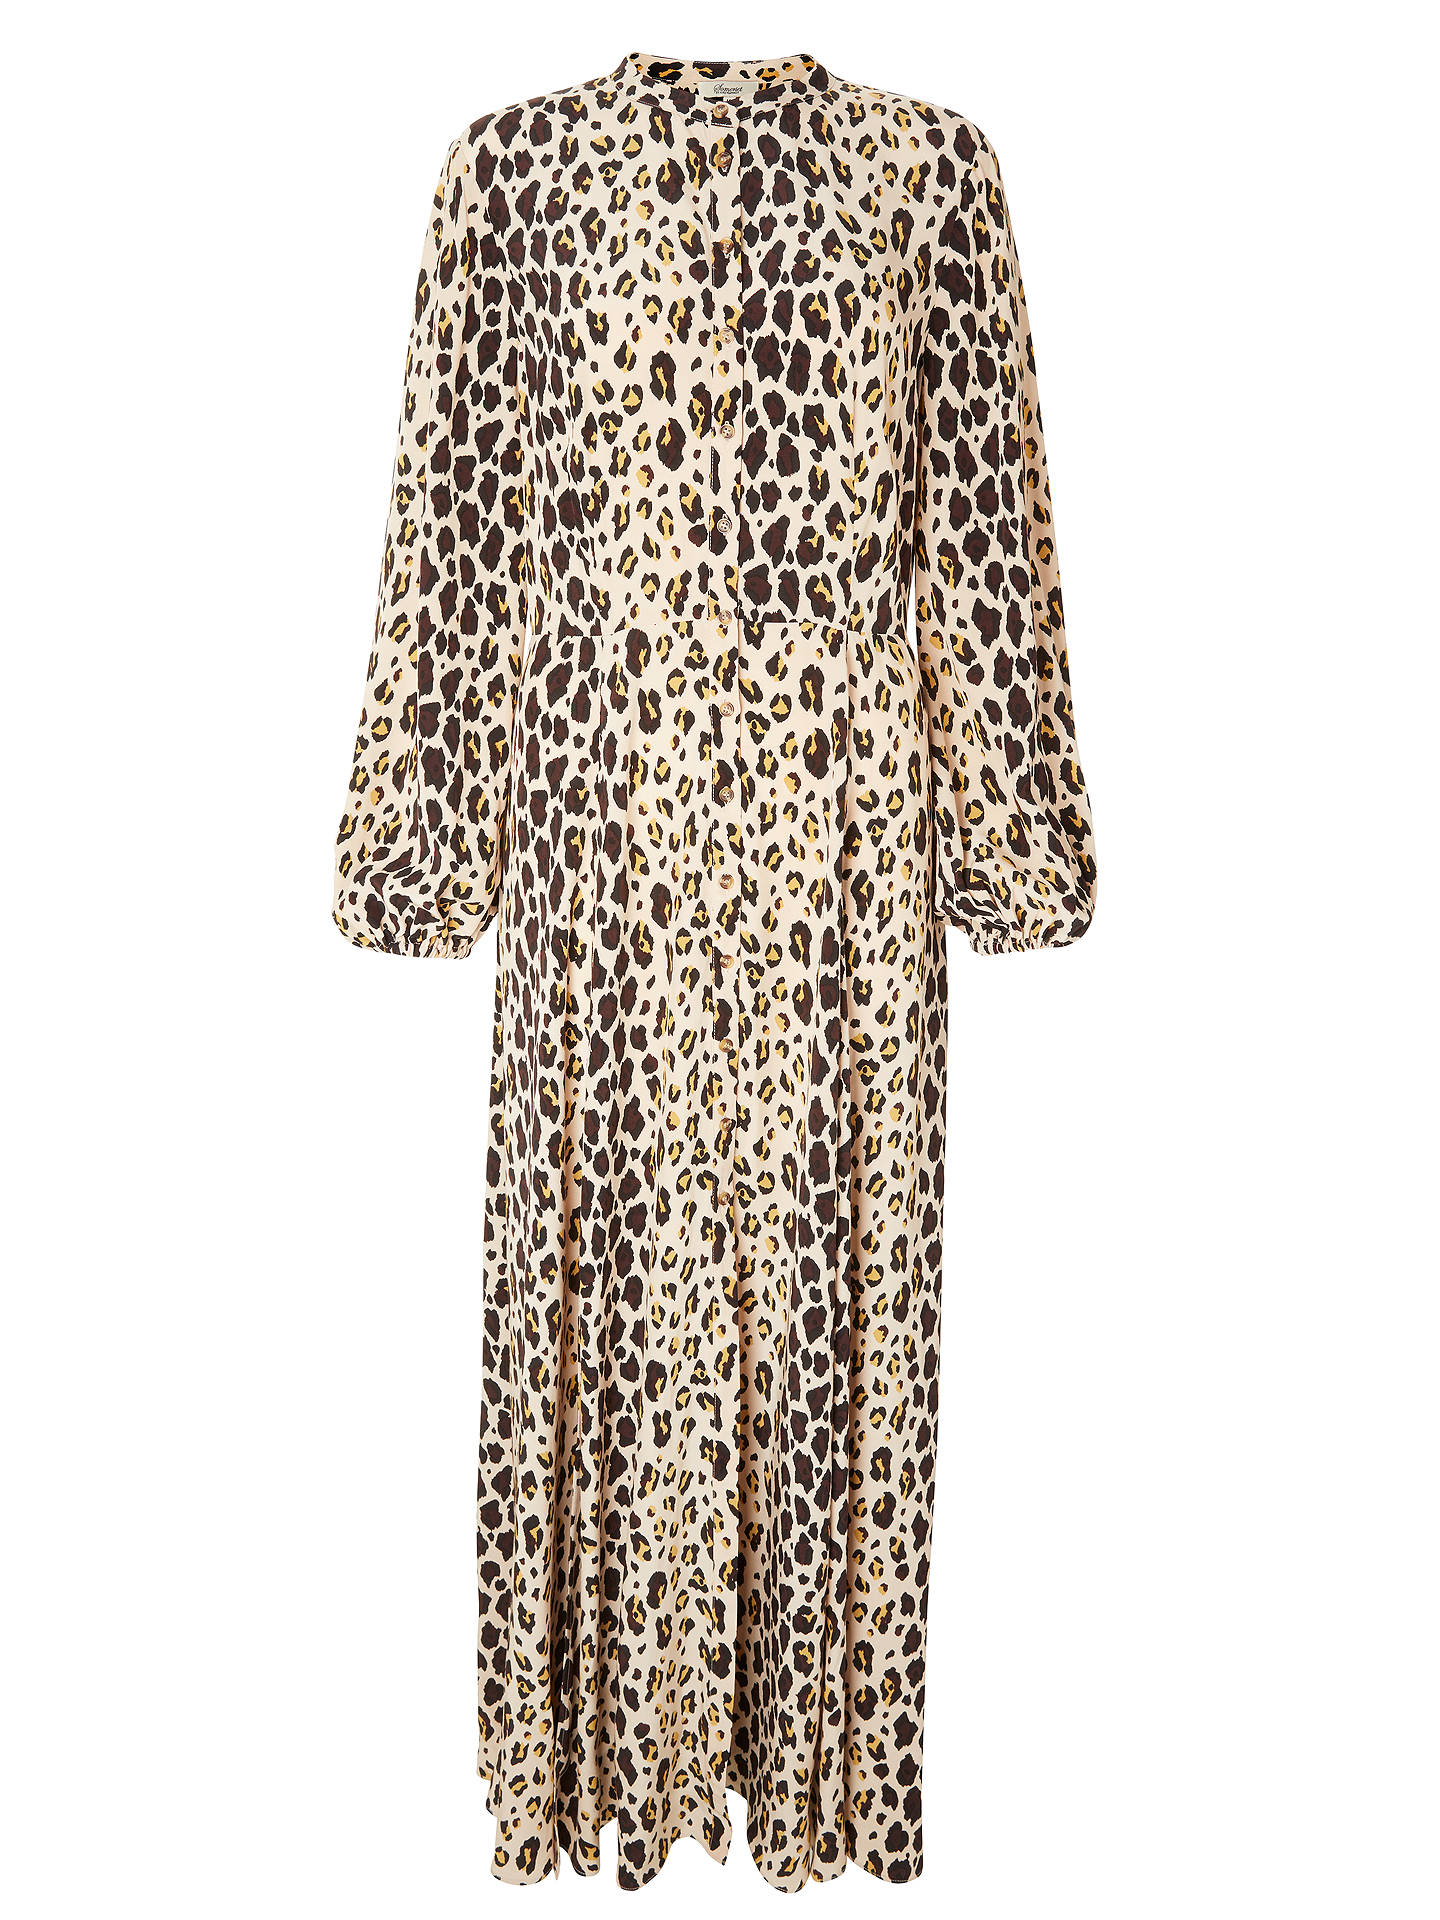 Buy Somerset by Alice Temperley Leopard Print Maxi Dress, Multi, 8 Online at johnlewis.com